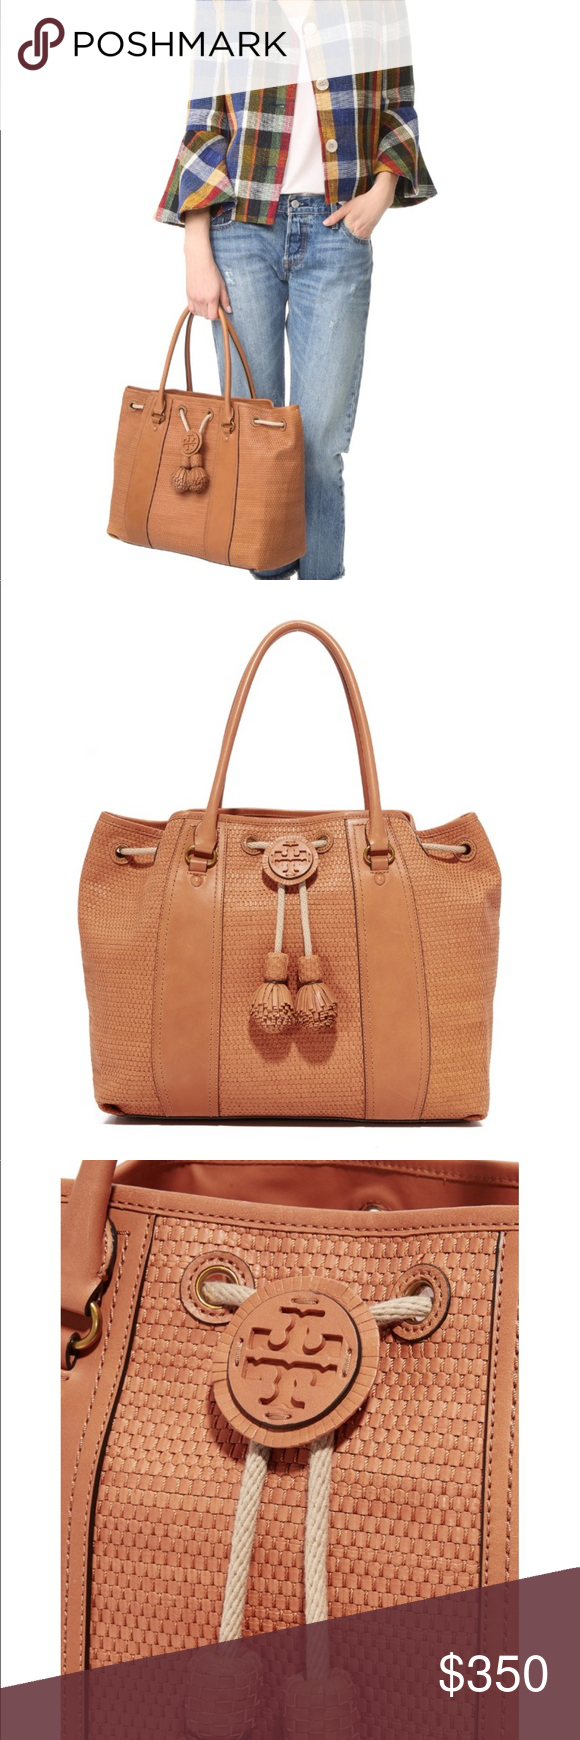 fa94ae444fd Tory burch Amalfi Woven Drawstring Tote Used a few times! There are some  scratches on